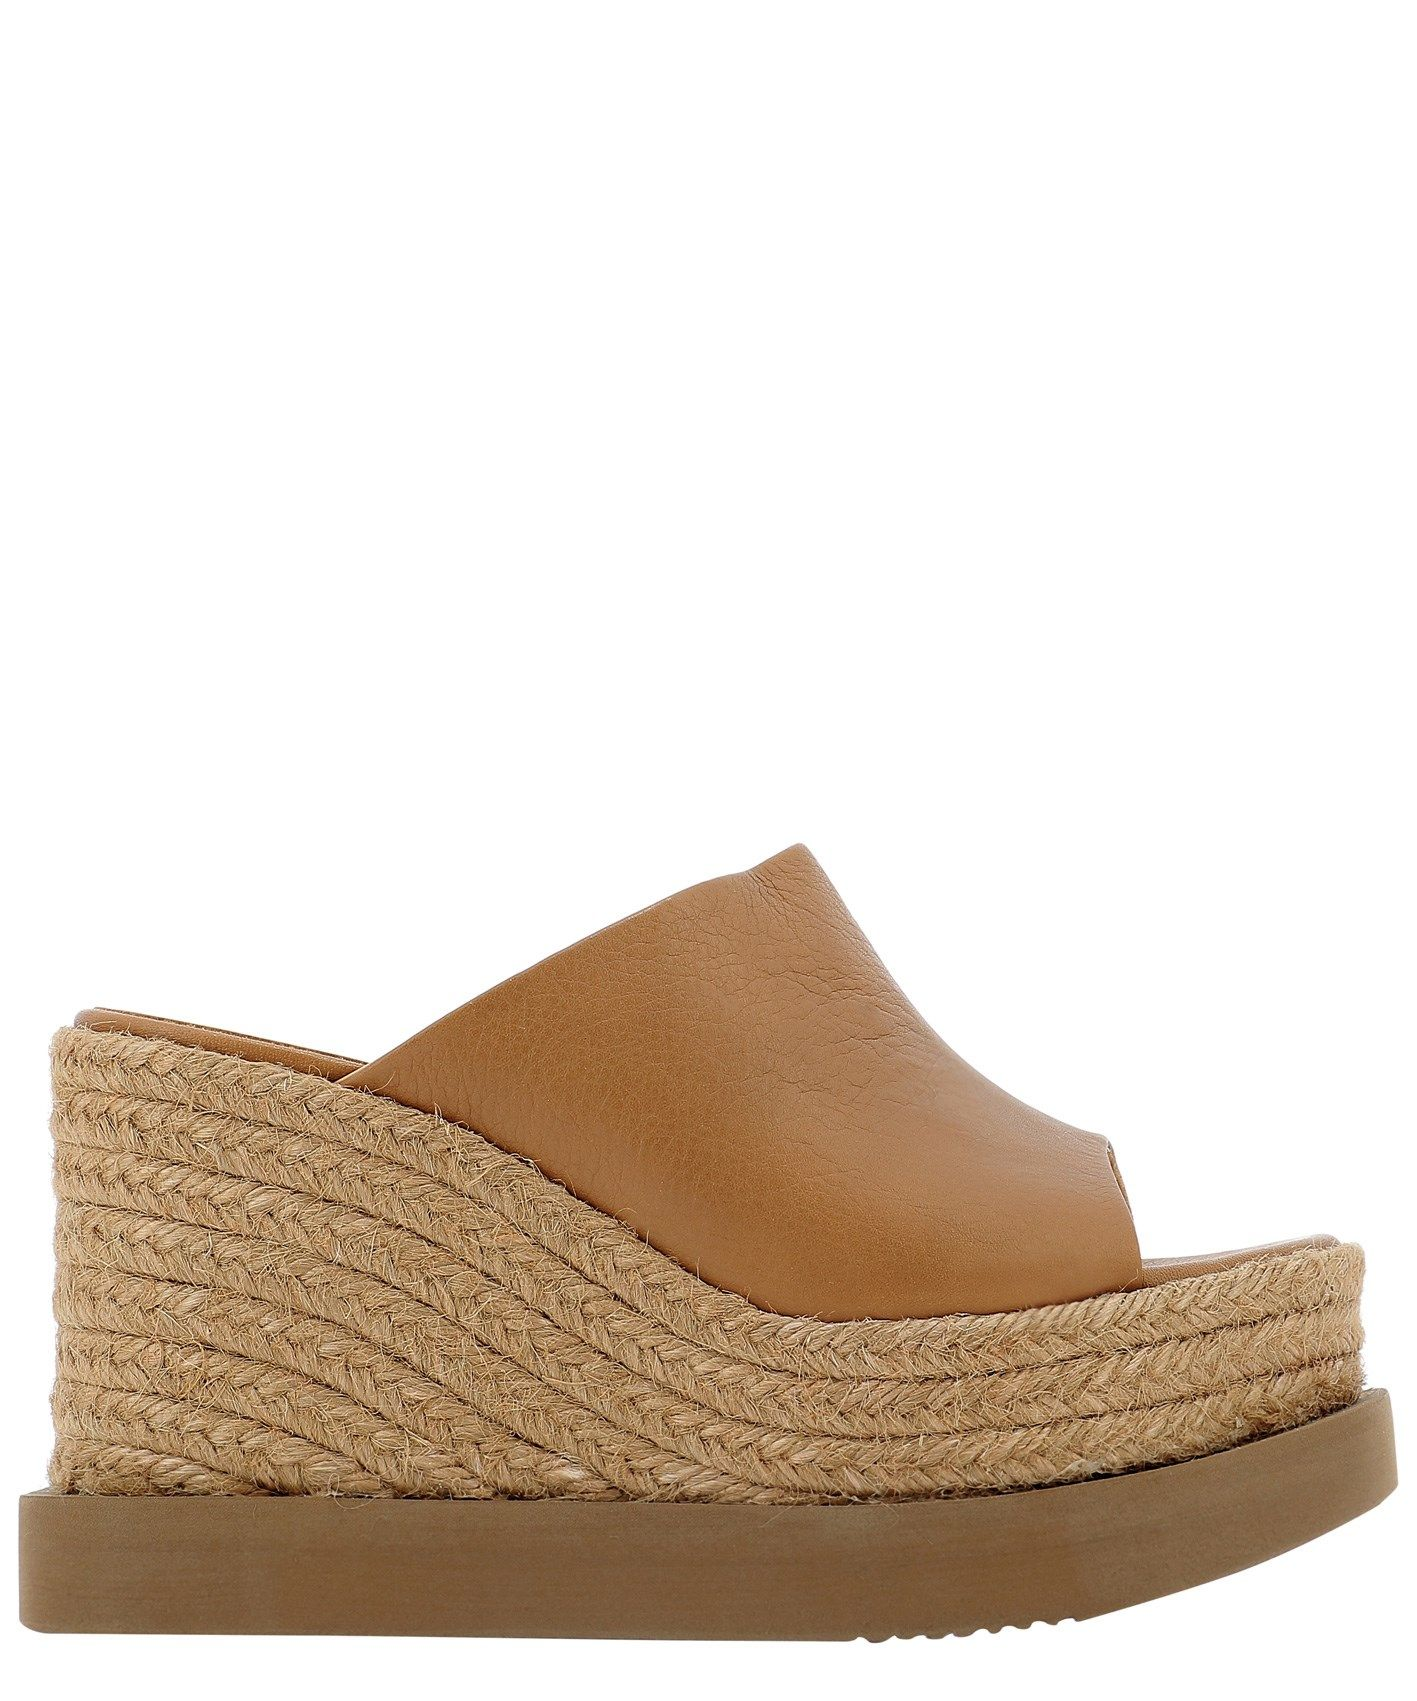 Paloma Barceló PALOMA BARCEL WOMEN'S CARCARANANAPASOFTCUOIO BROWN LEATHER WEDGES